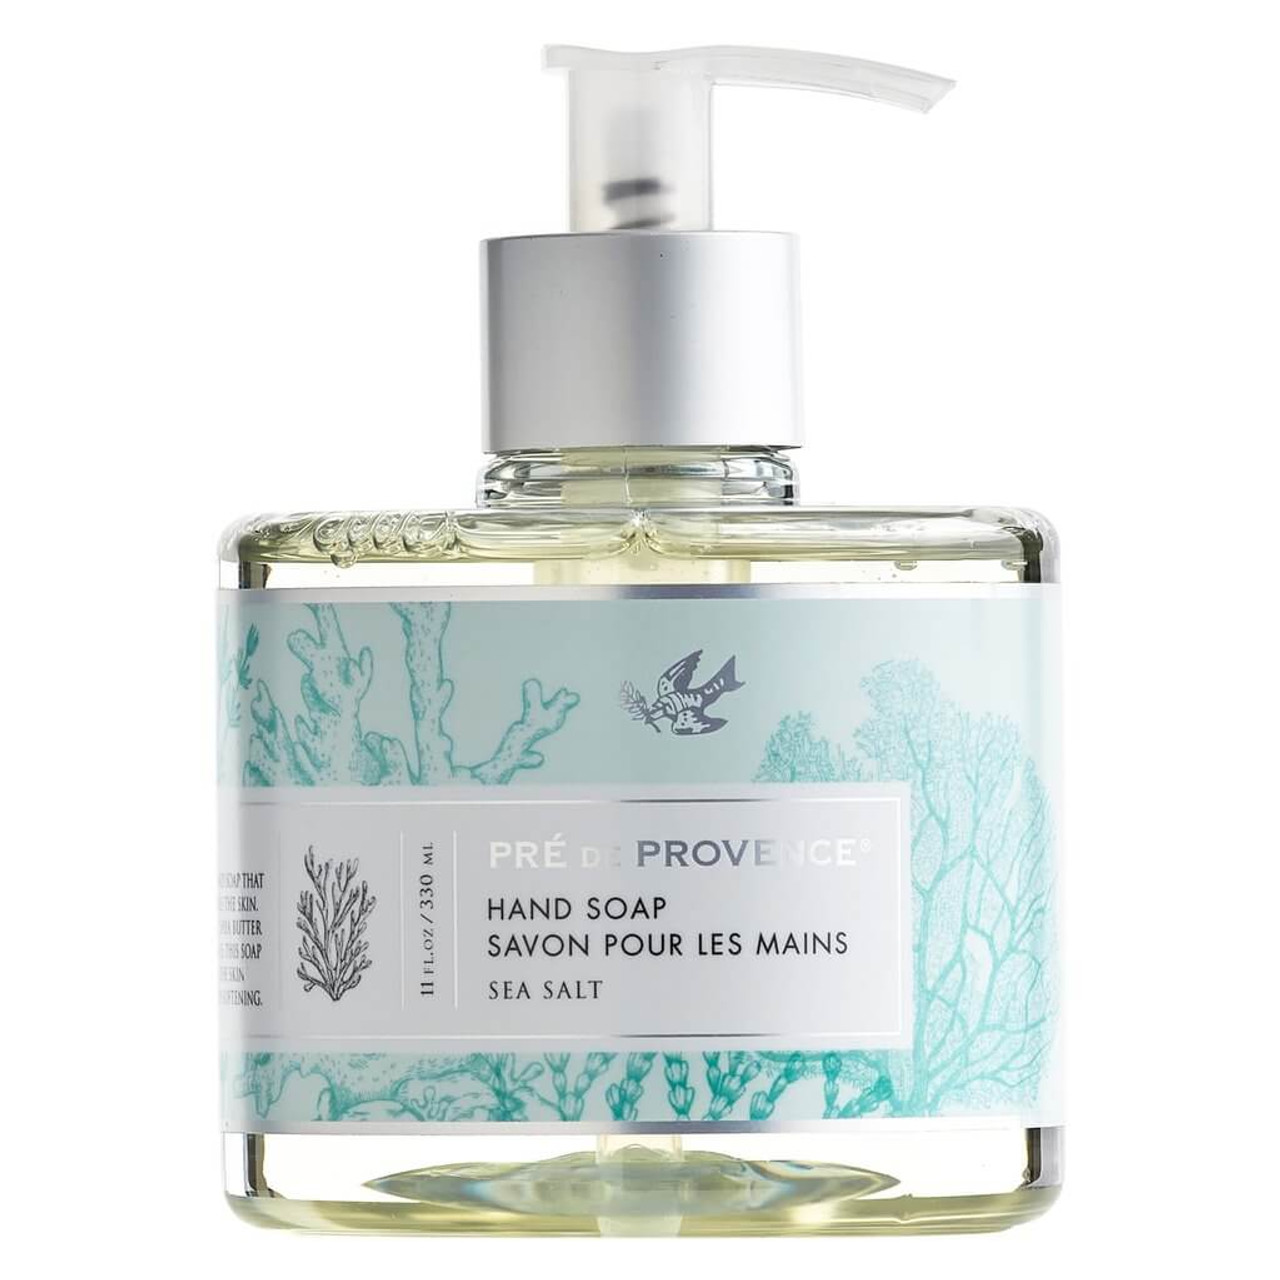 A divinely scented liquid hand soap that gently cleanses and soothes the skin. Formulated with glycerin, shea butter, hydro extract, and vitamin E. This soap is designed to nourish the skin while gently cleansing and softening. 11 oz.